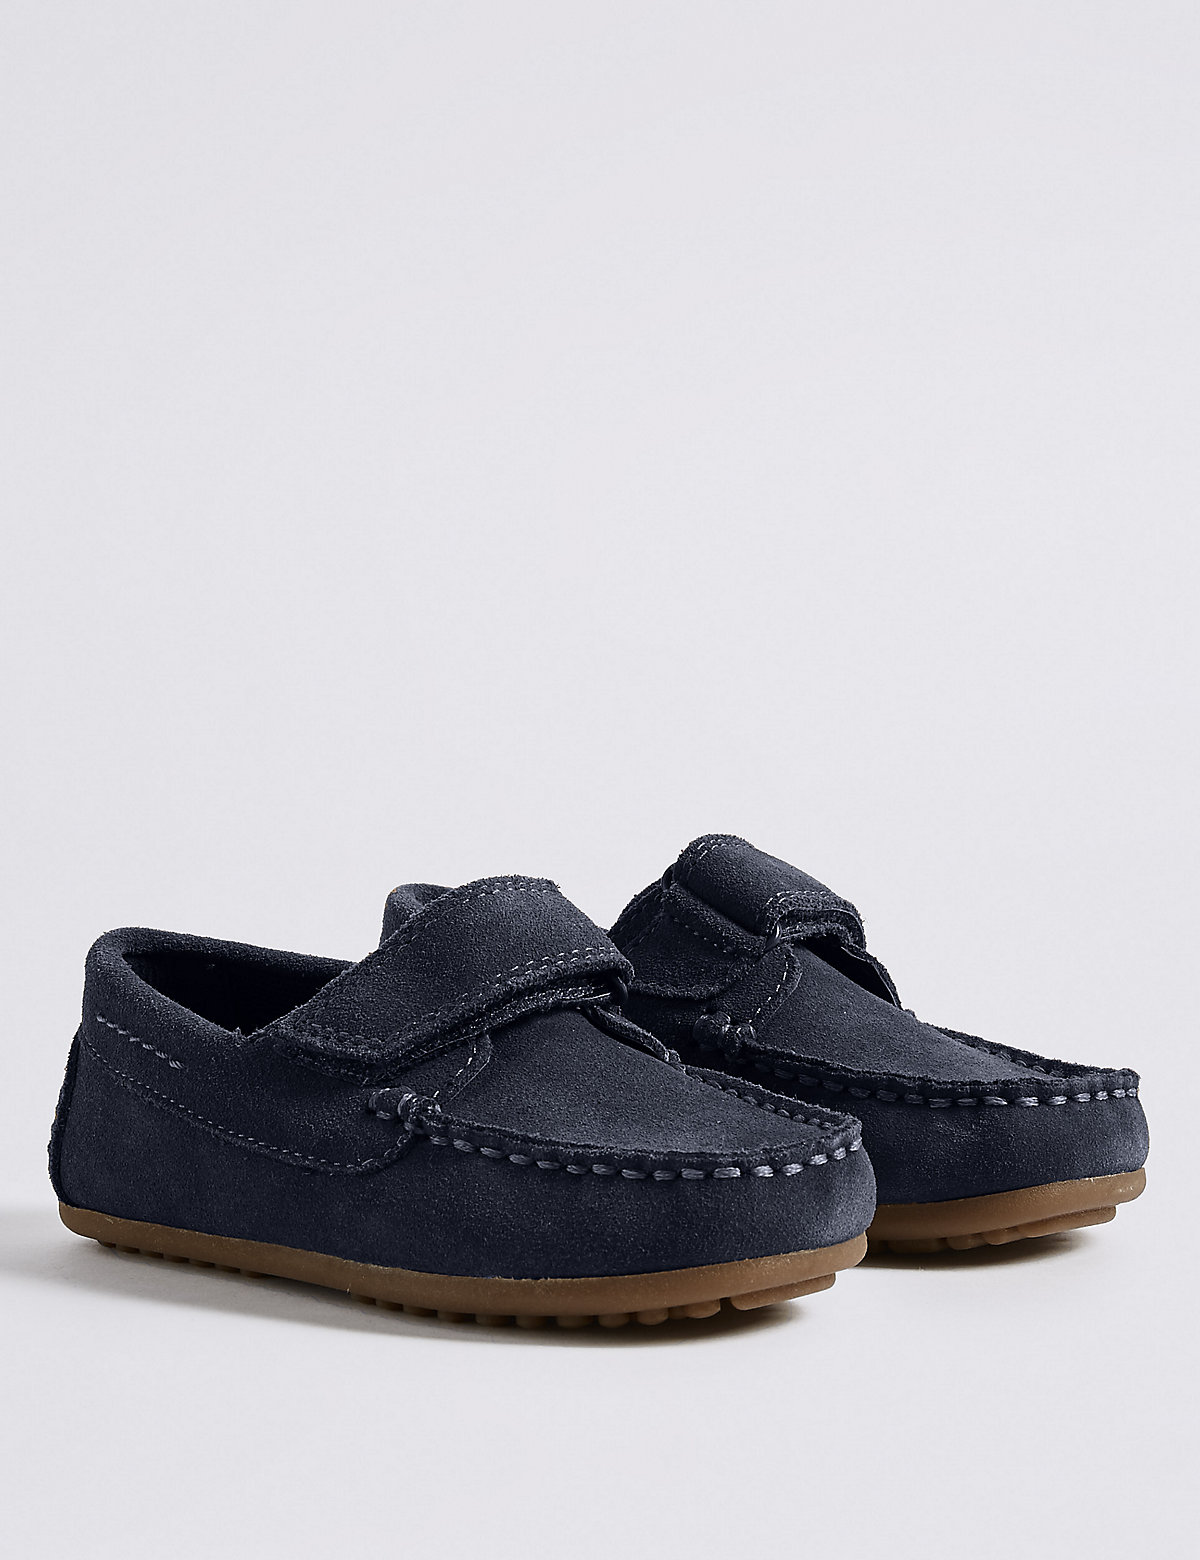 Image of Kids' Suede Driver Slip-on Shoes